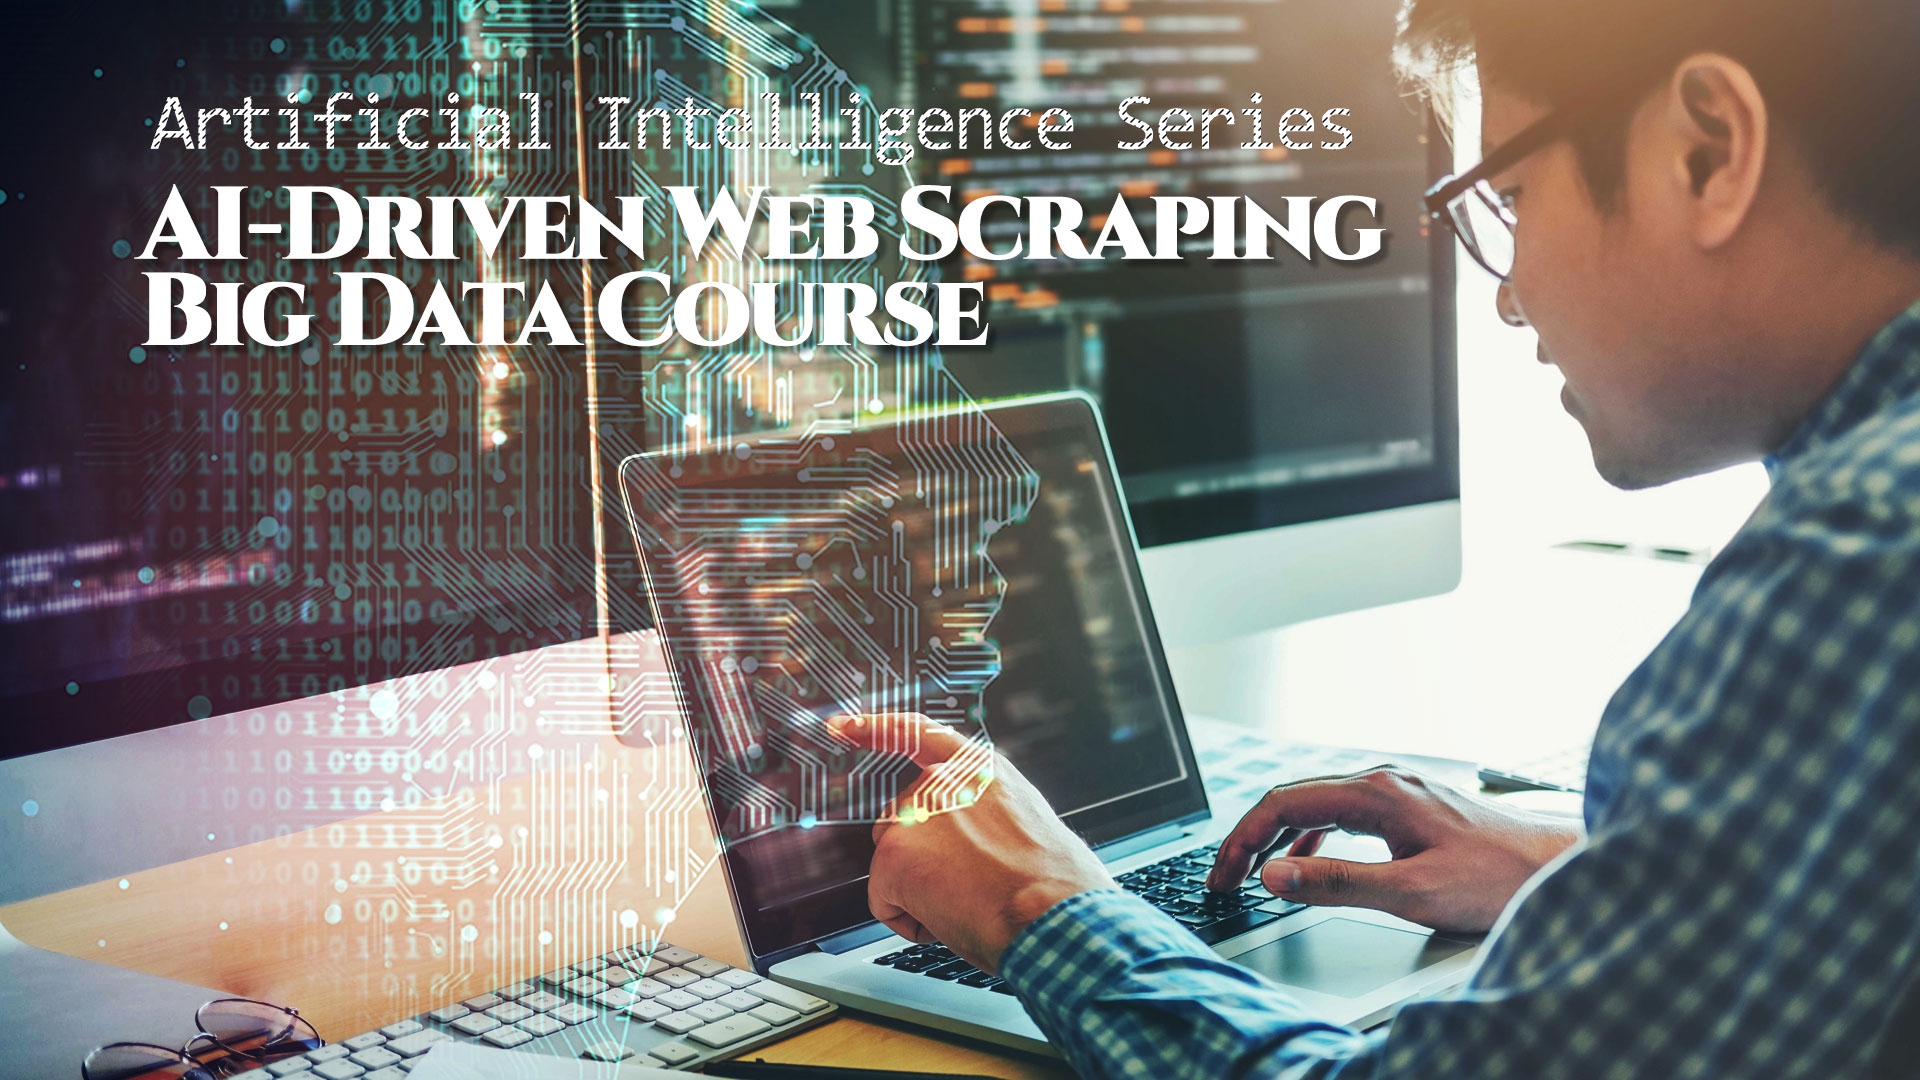 Artificial Intelligence AI-Driven Web Scraping Big Data Course